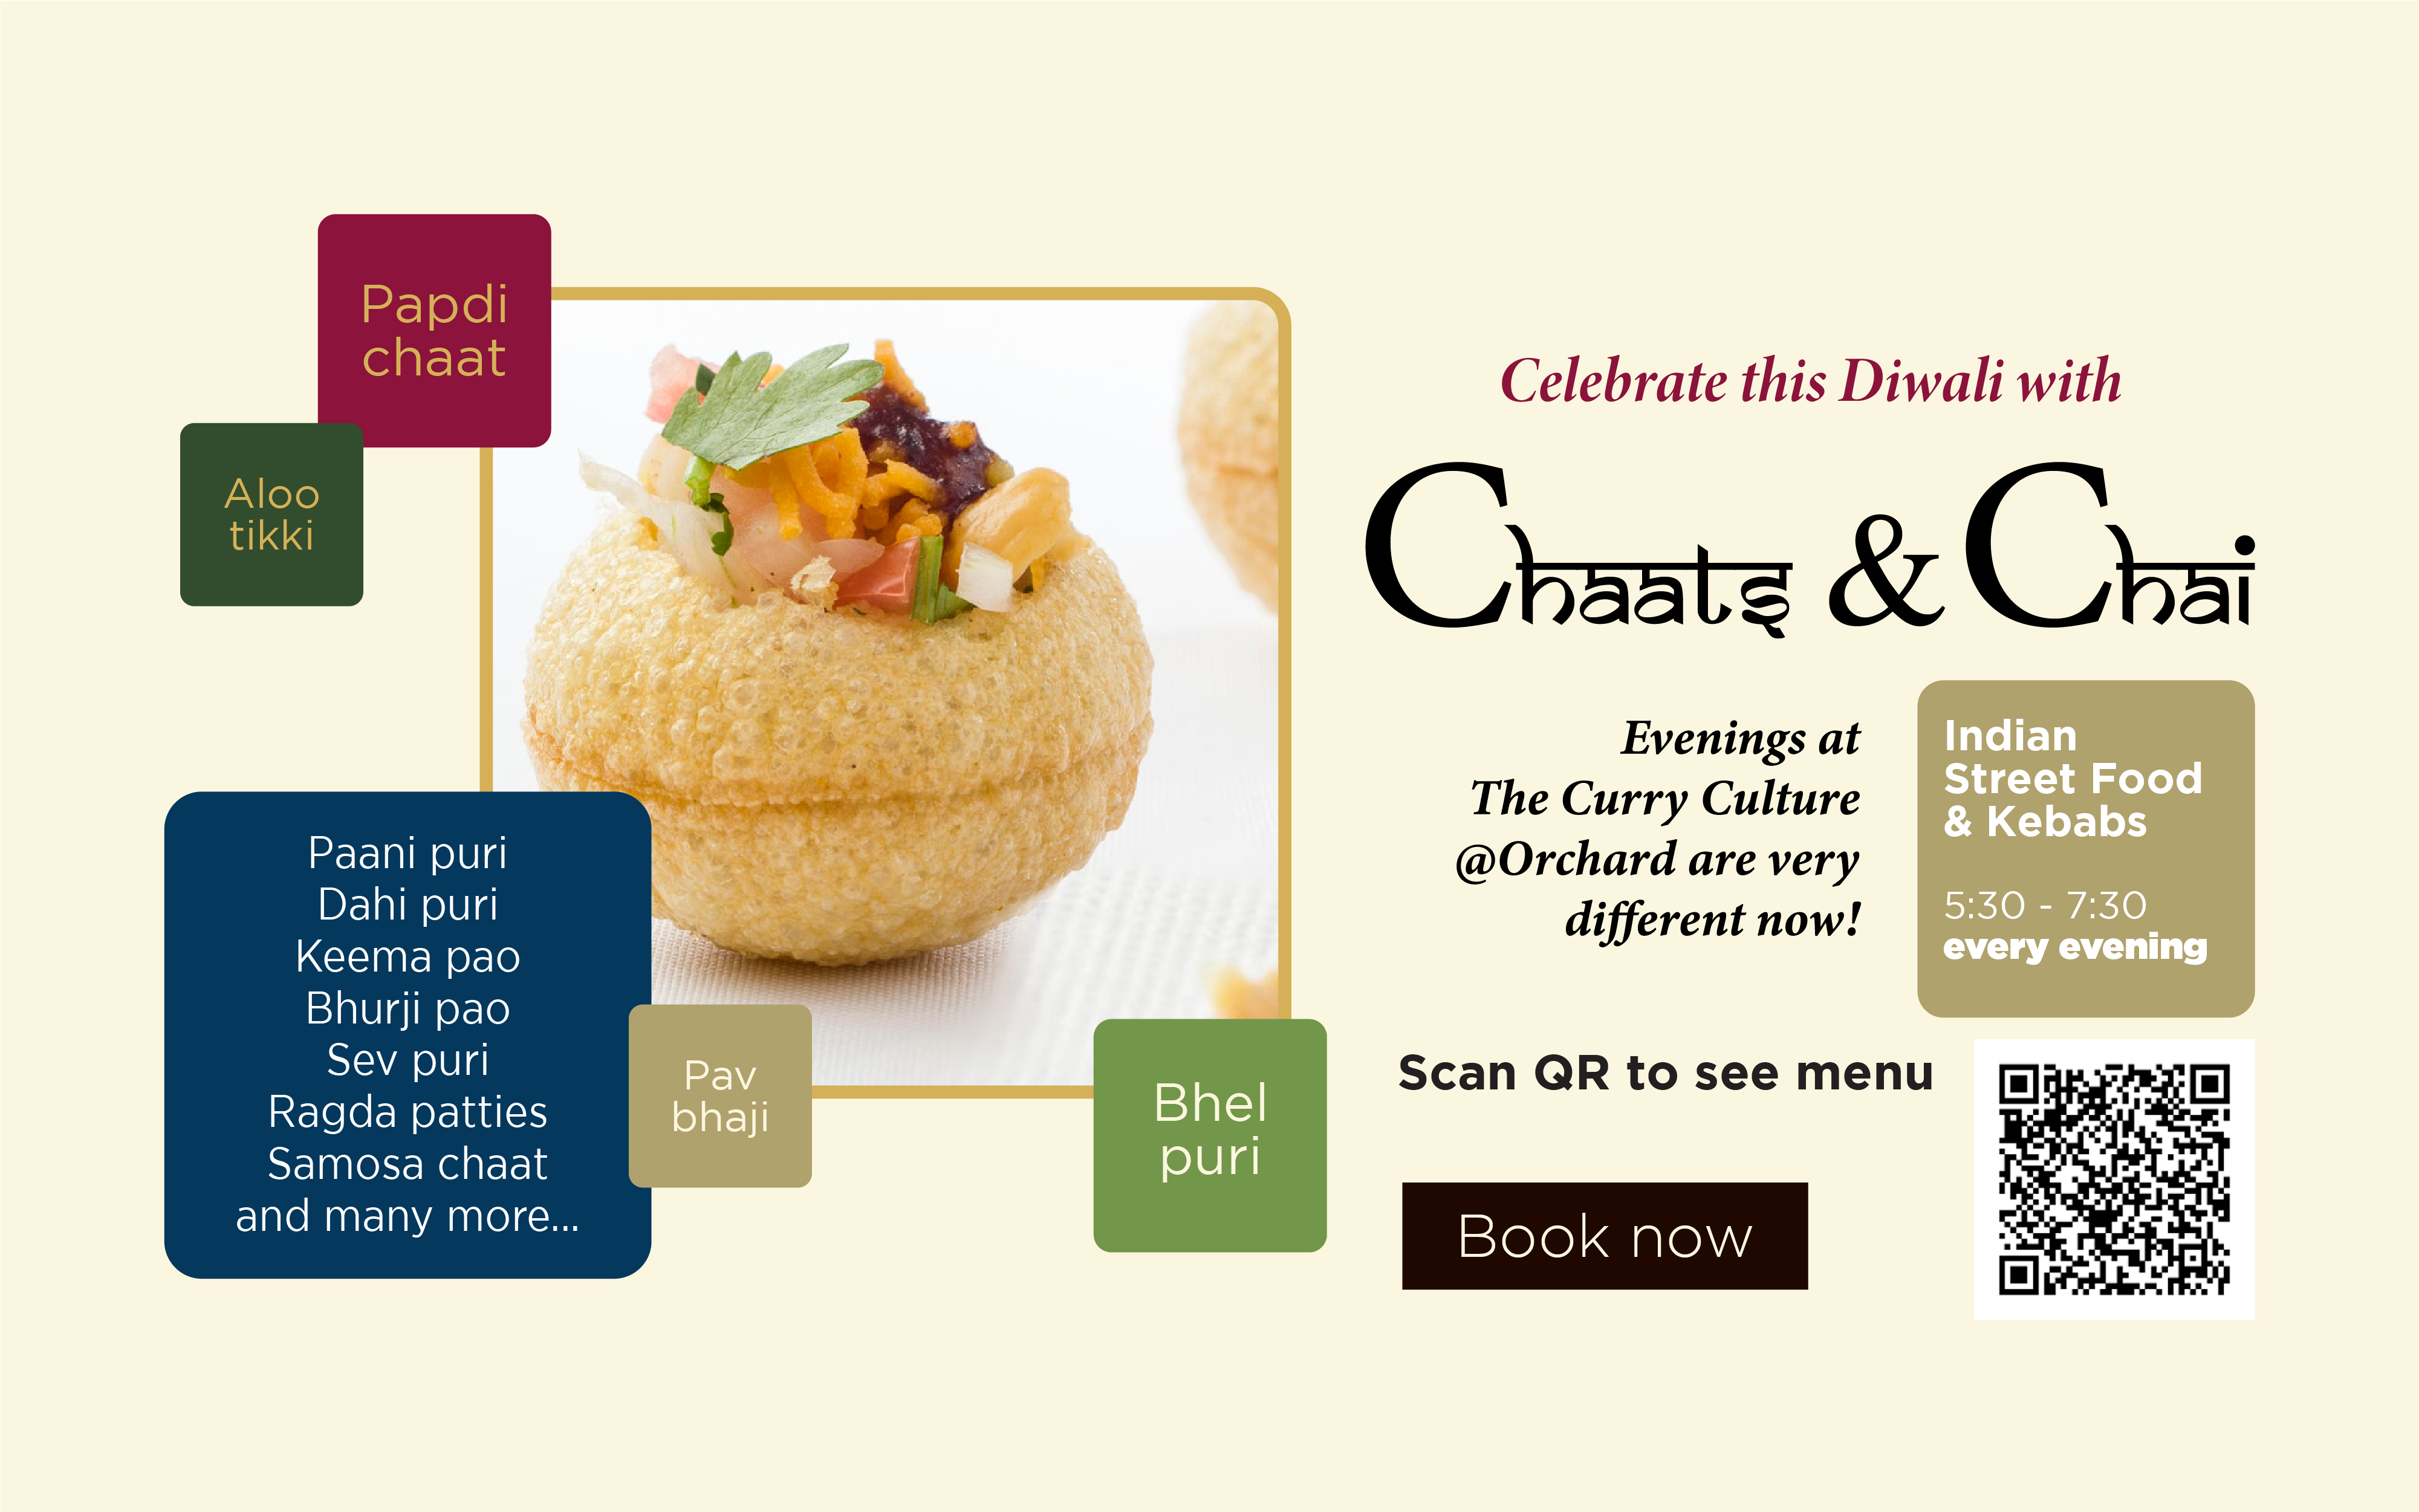 Celebrate this Diwali with Chaats & Chai